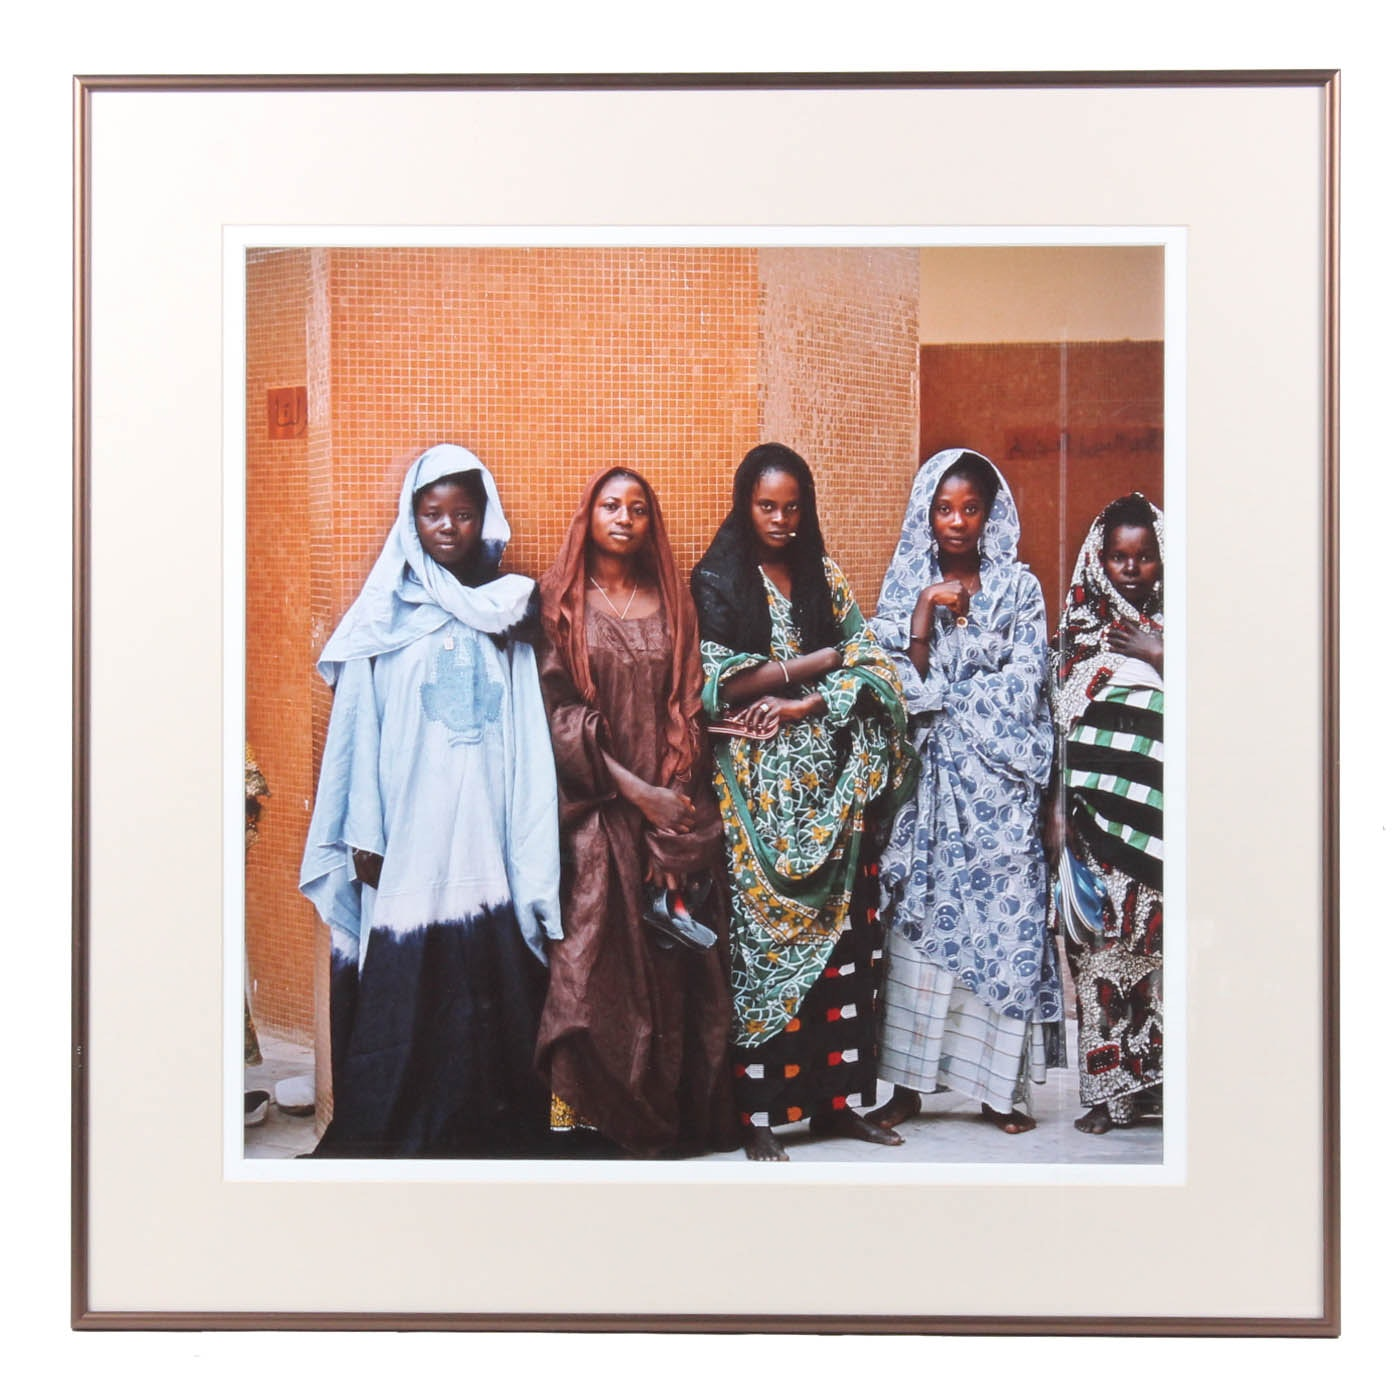 Framed Photograph of Women in Native Costume